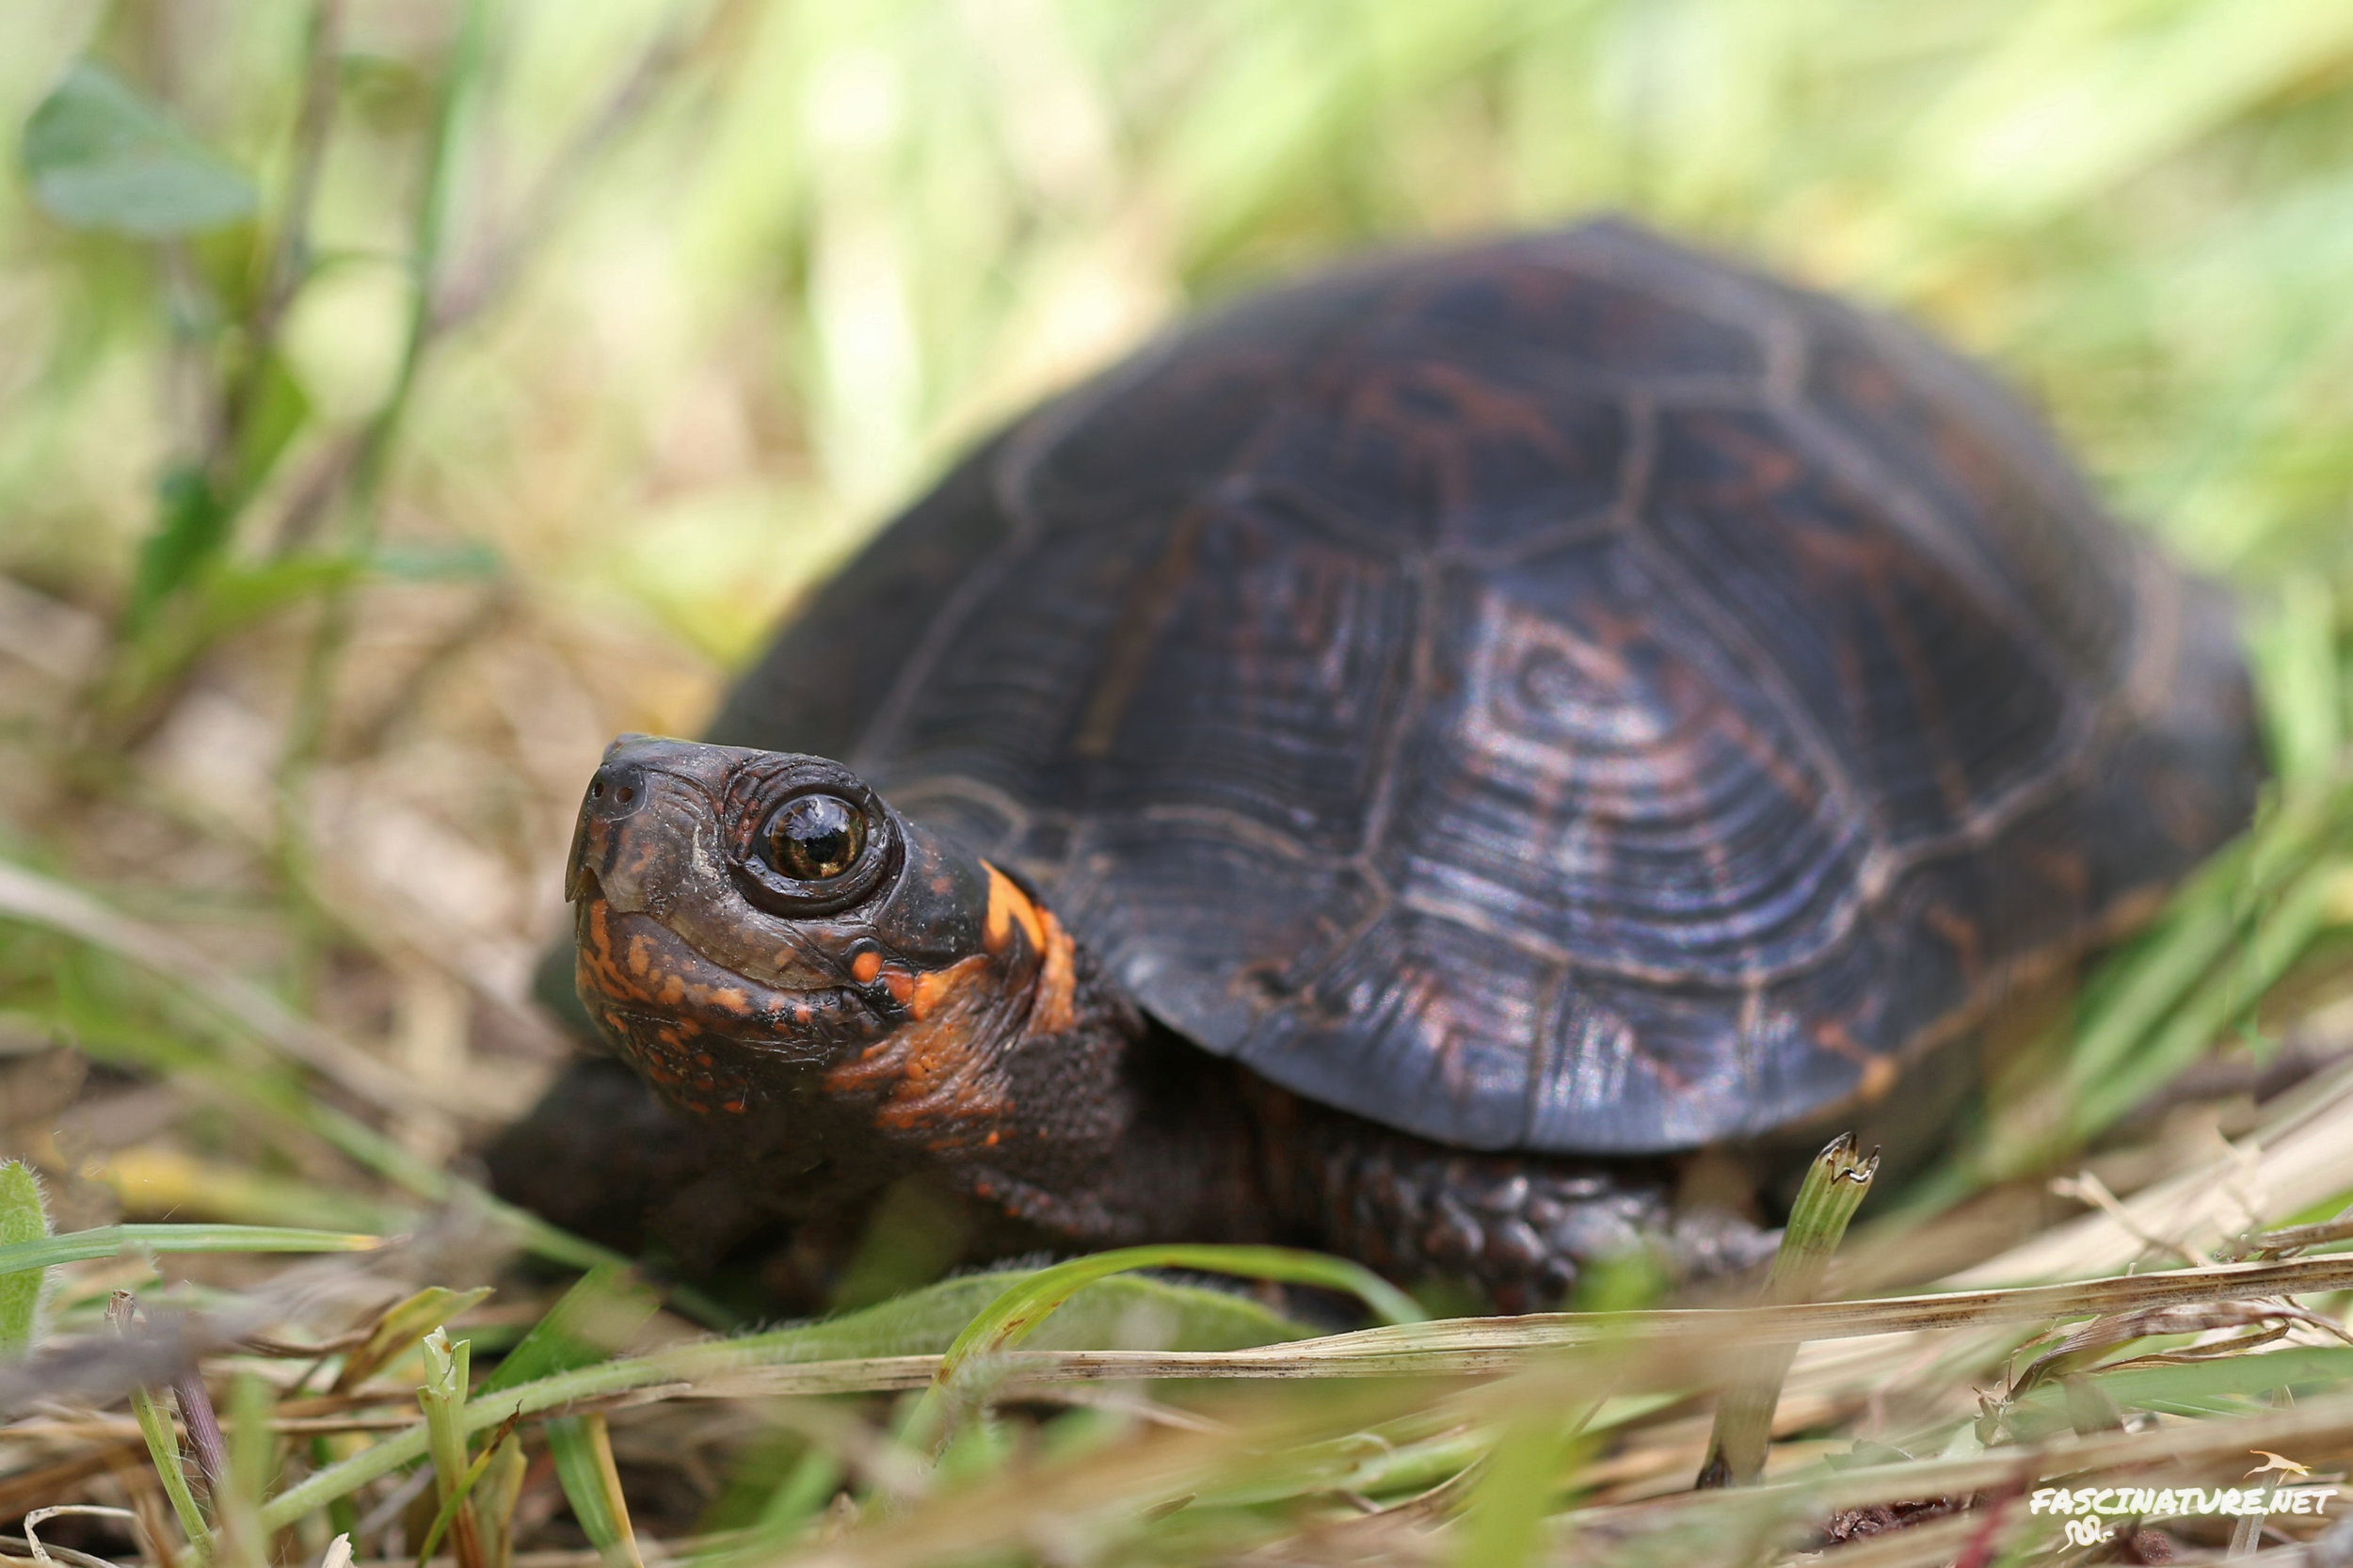 Featured in the Turtles of the Northeast